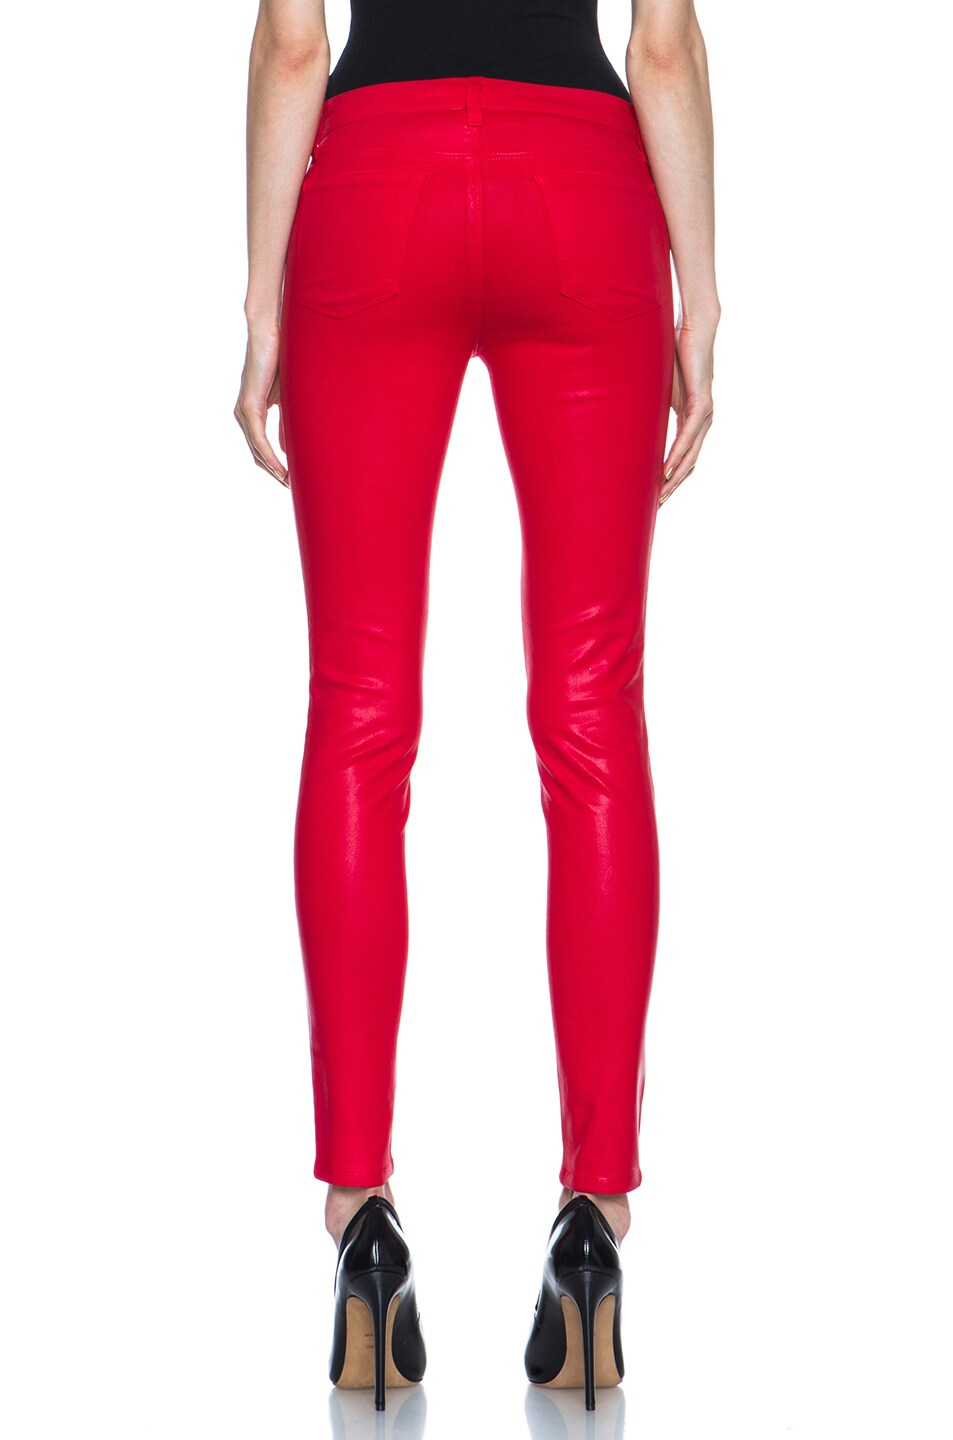 Image 4 of J Brand Mid-Rise Coated Legging in Coated Adra Red